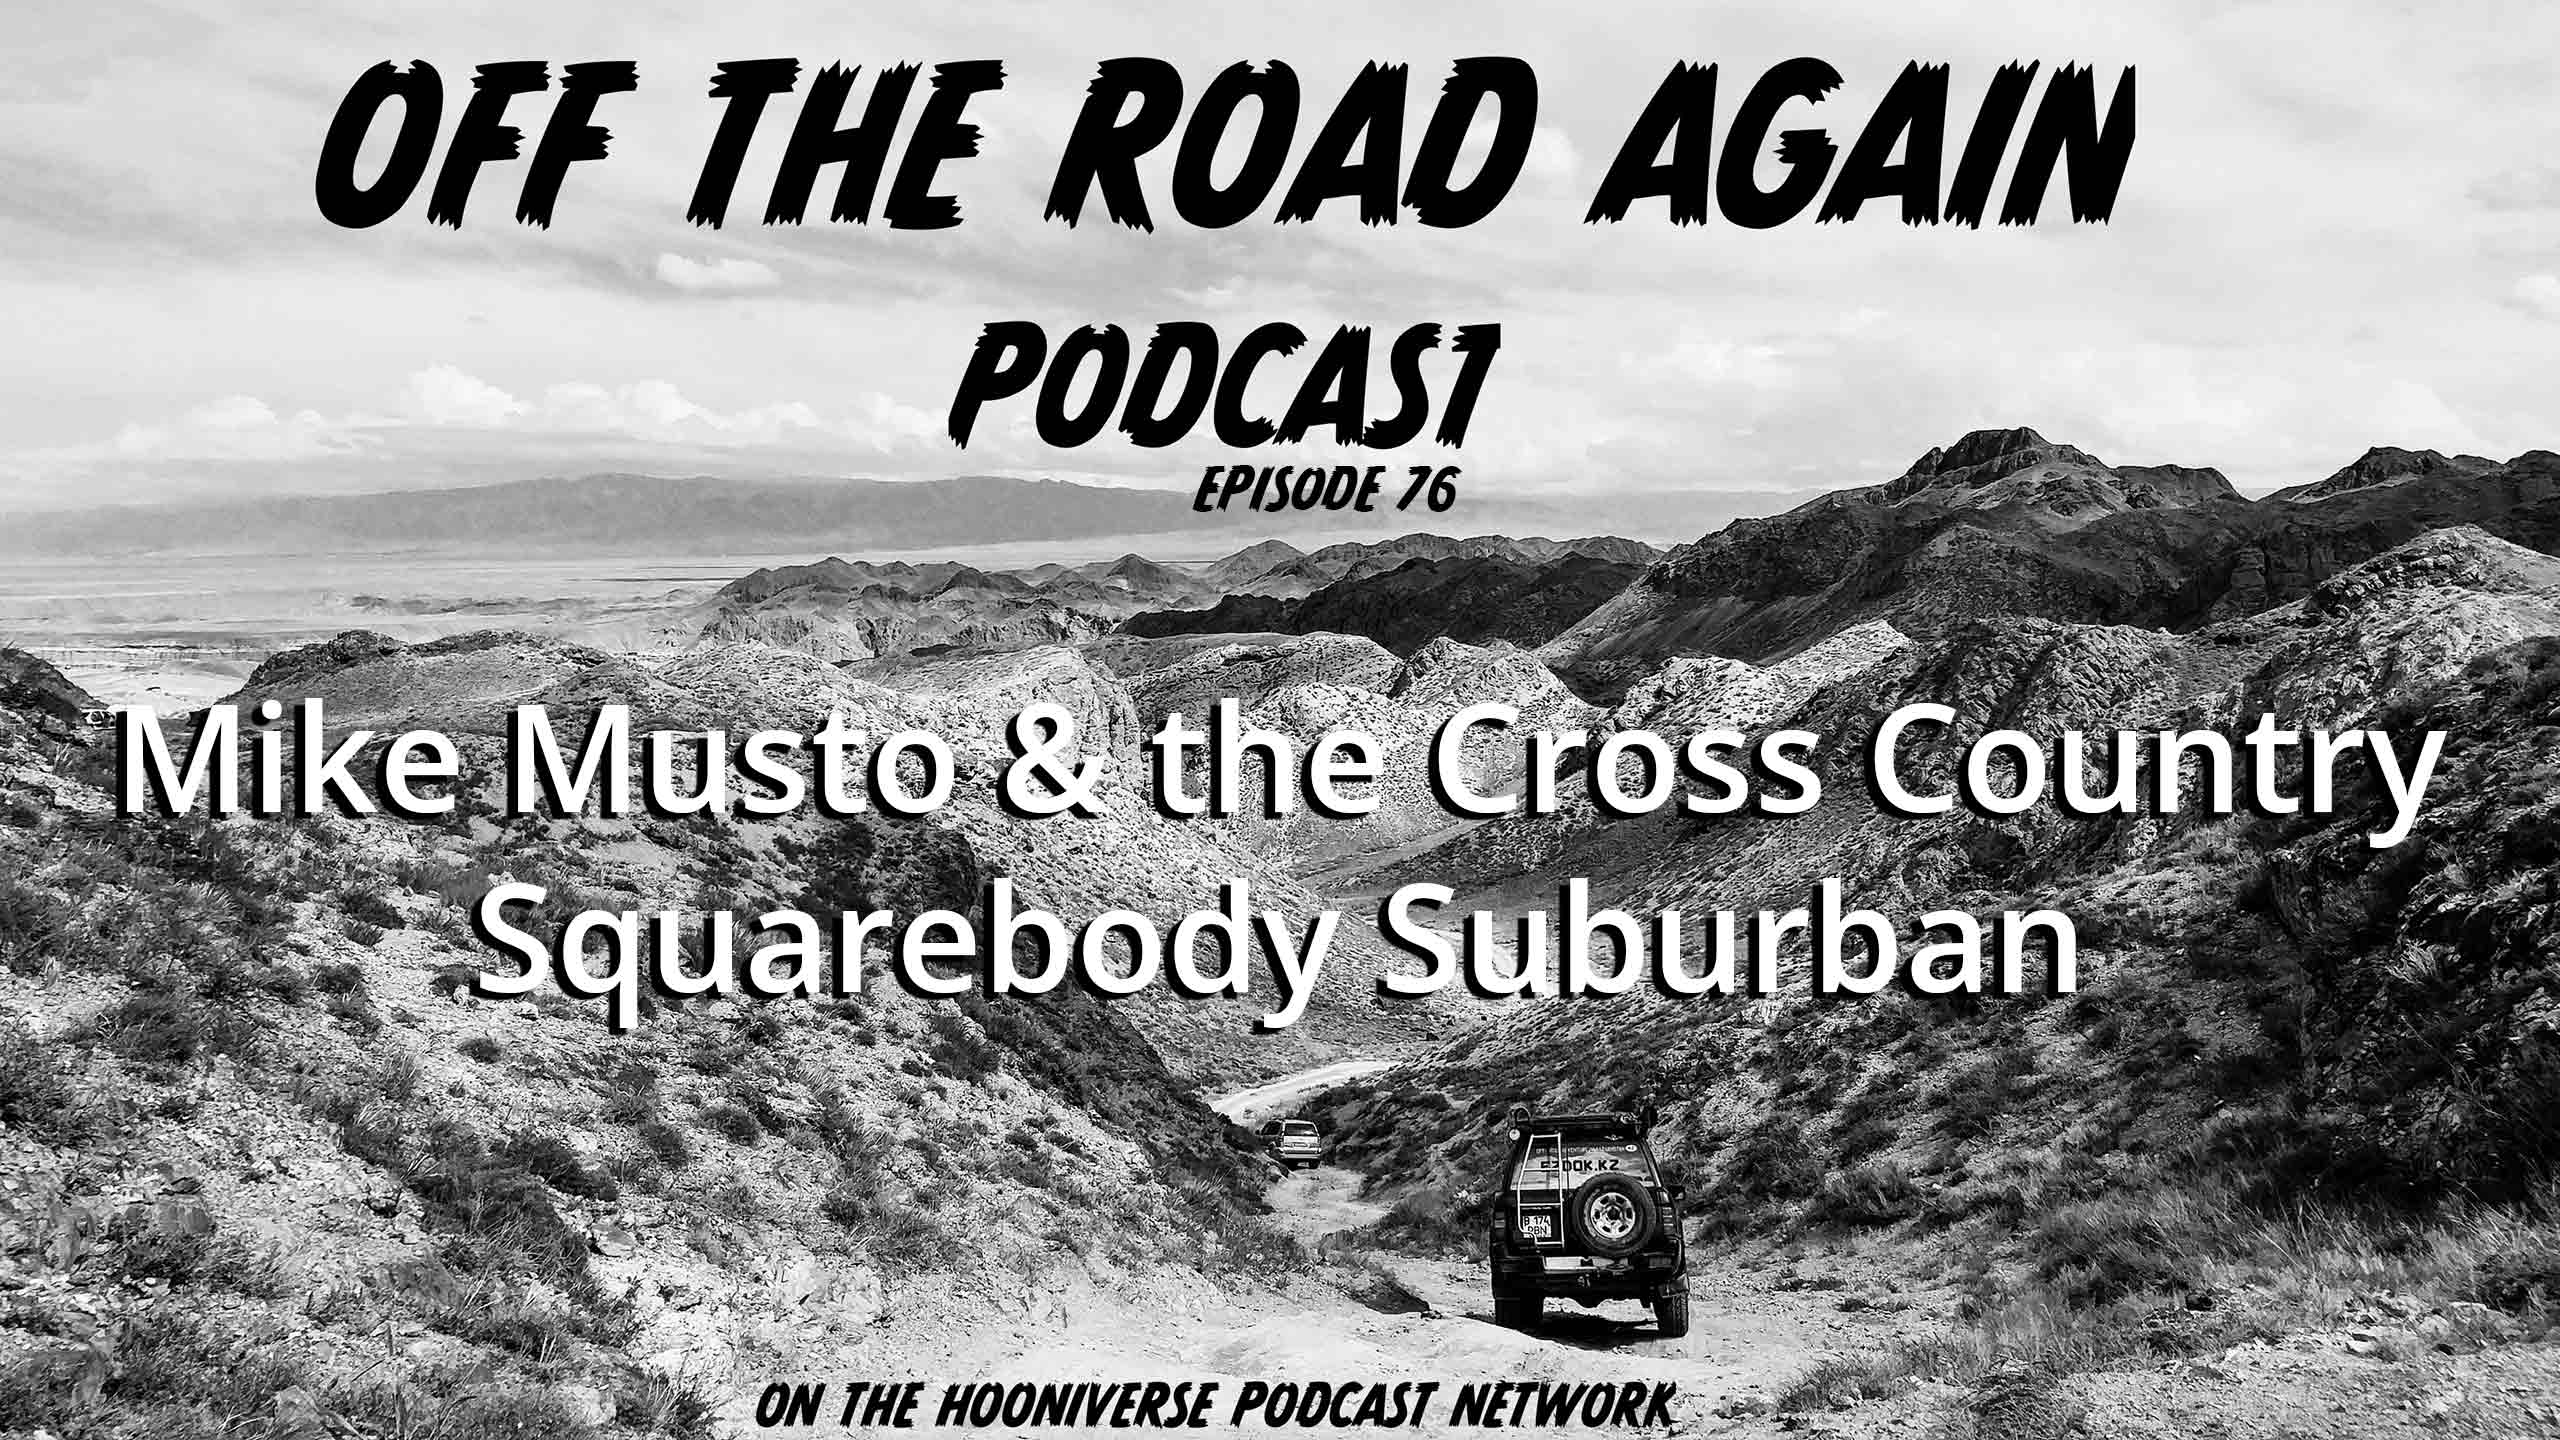 Mike-Musto-Off-The-Road-Again-Podcast-Episode-76